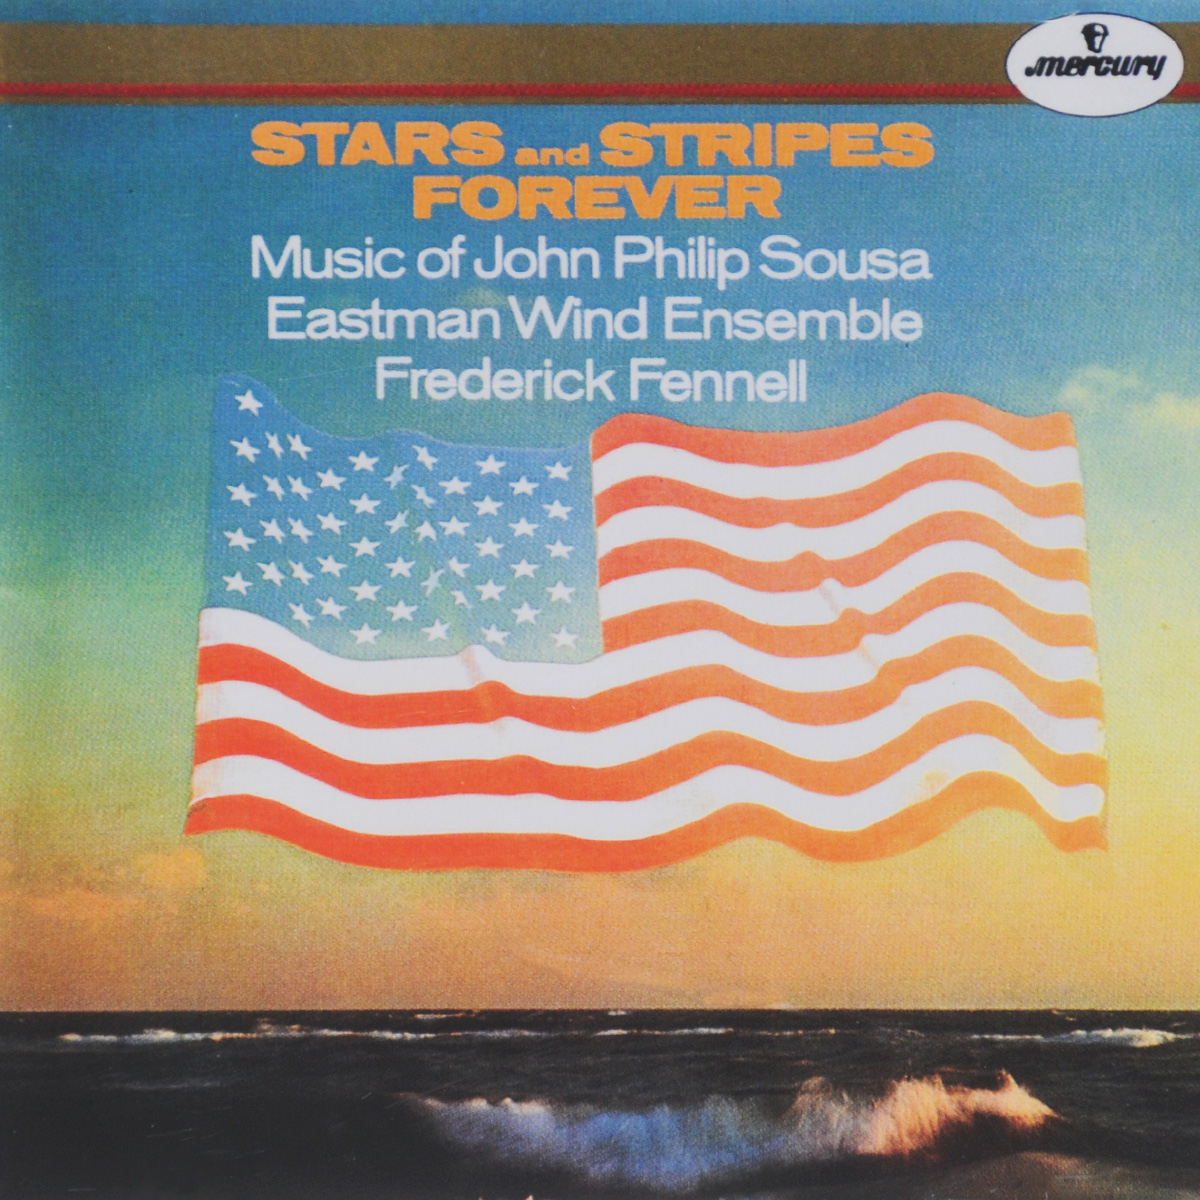 Фредерик Феннелл,Eastman Wind Ensemble Frederick Fennell. John Philip Sousa. Stars And Stripes Forever